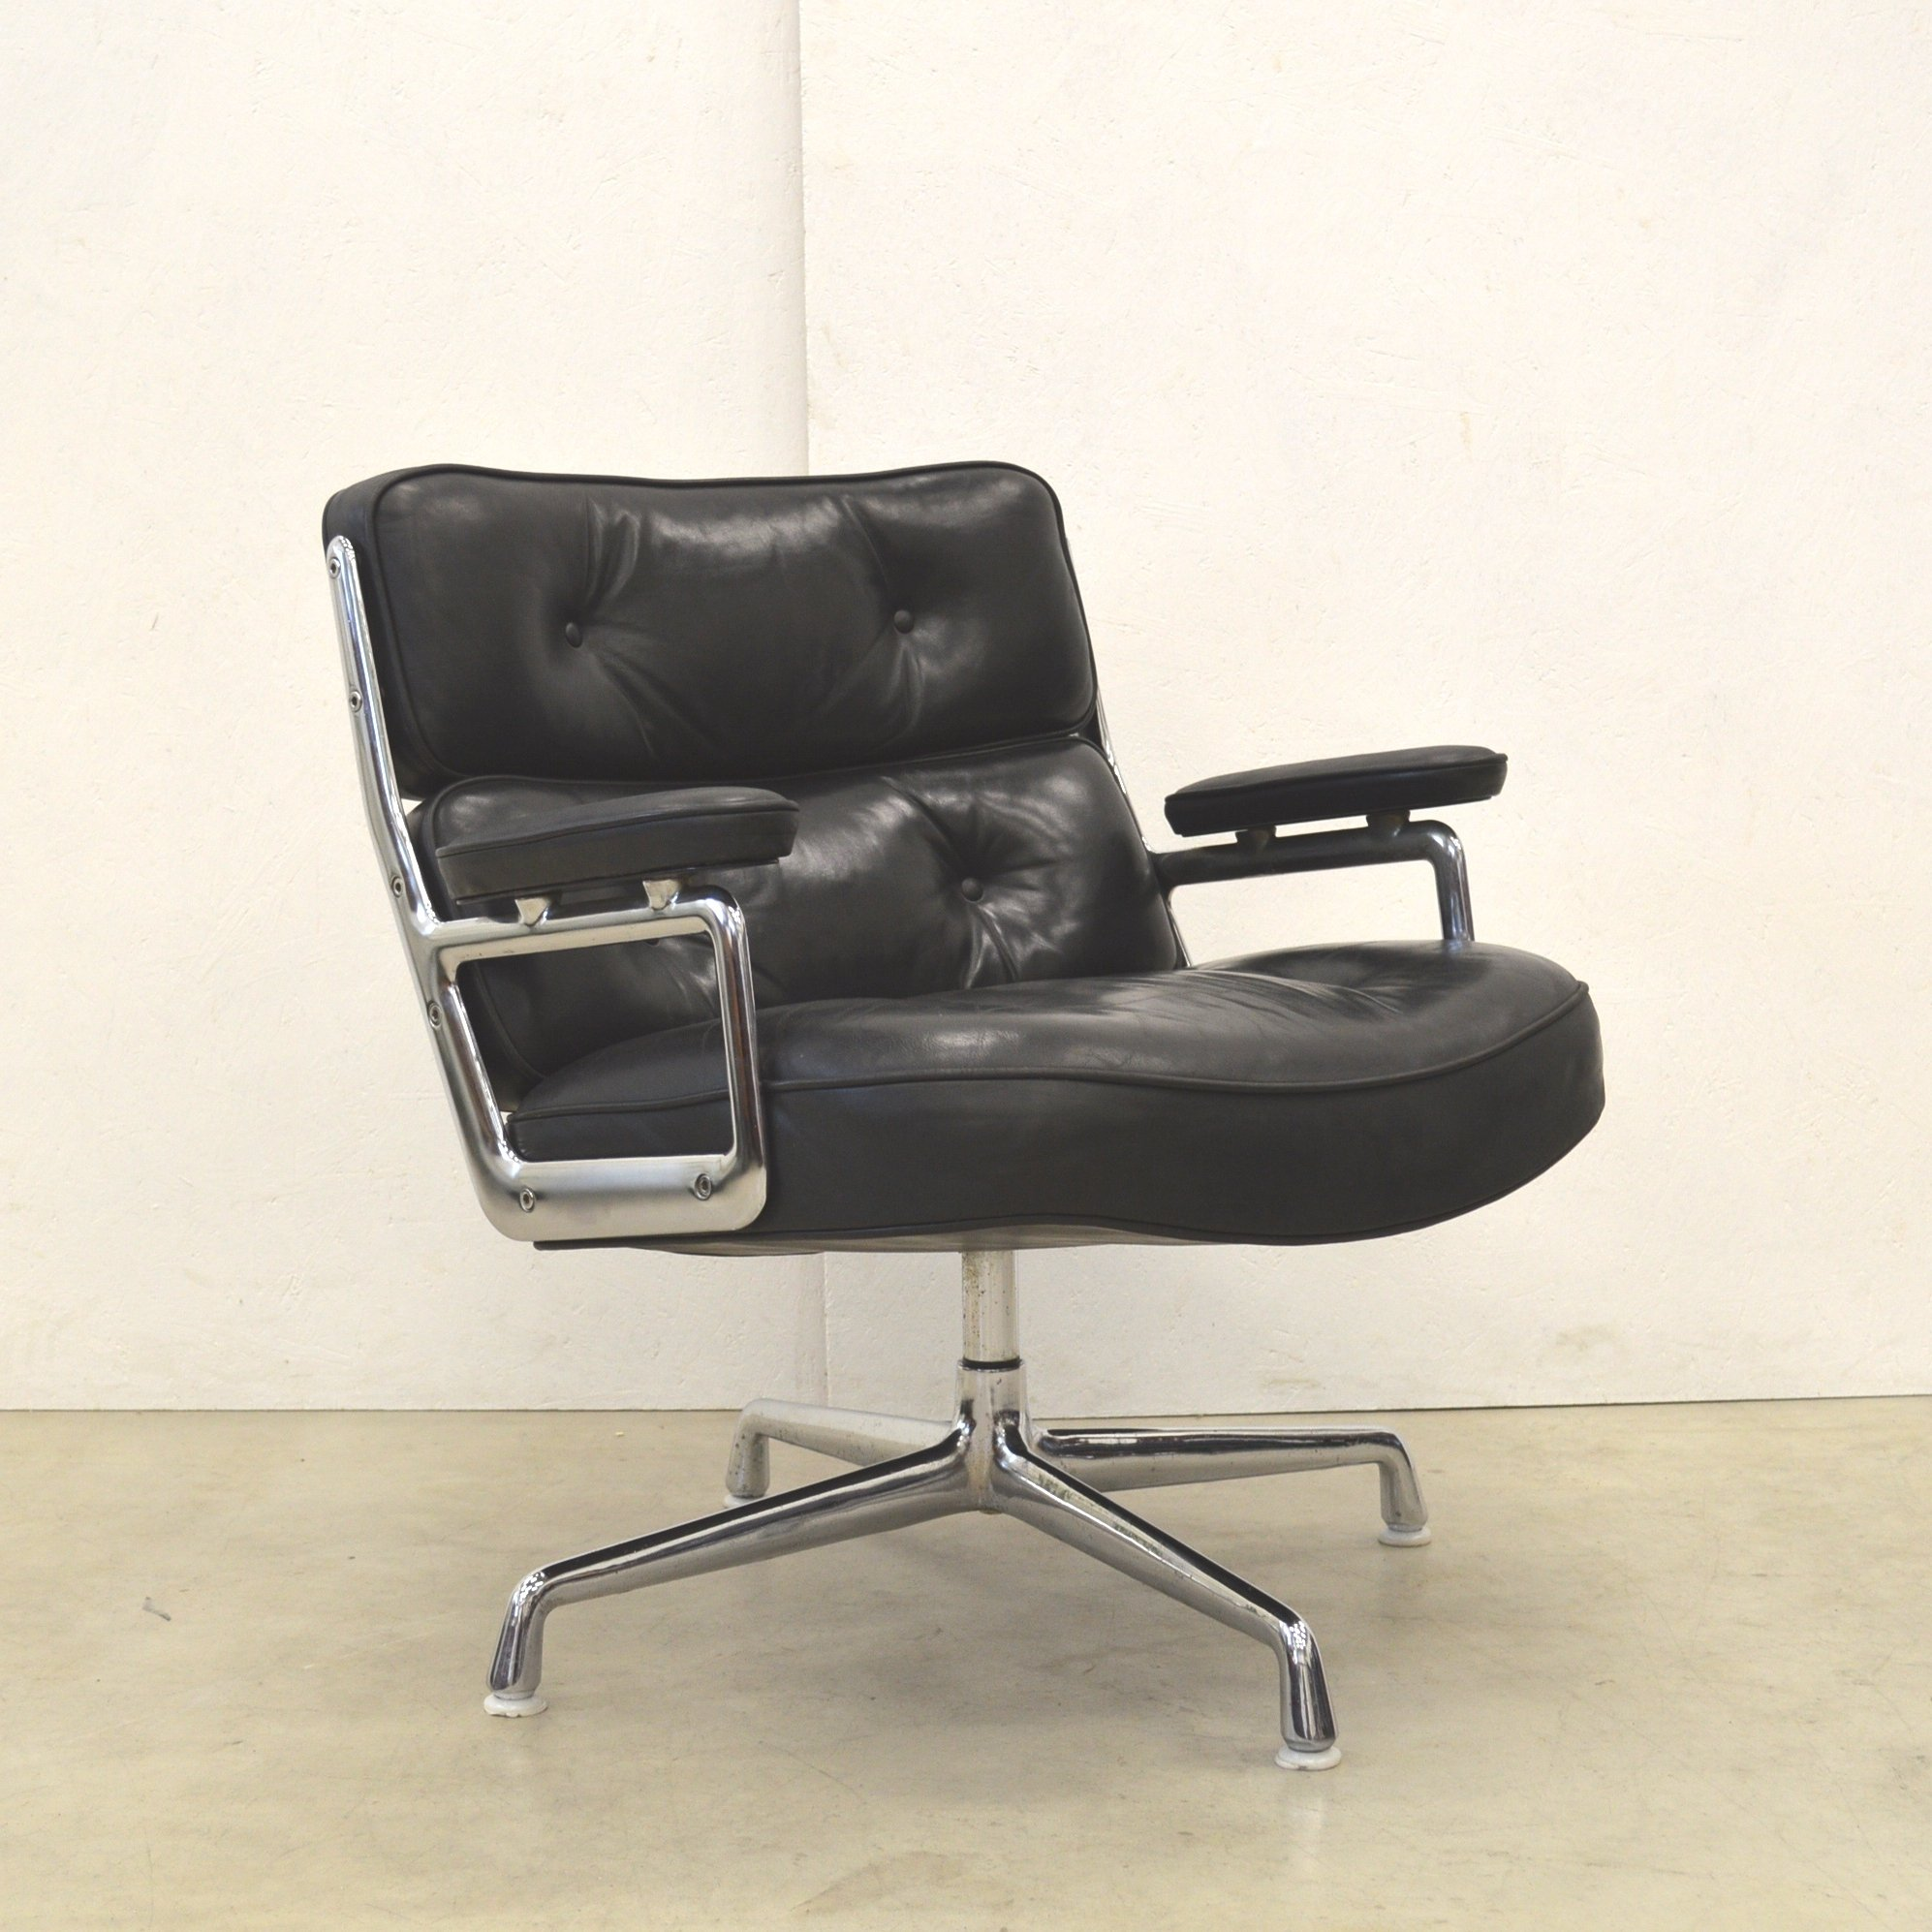 Eames lobby chair price home decor for Eames lobby chair replica